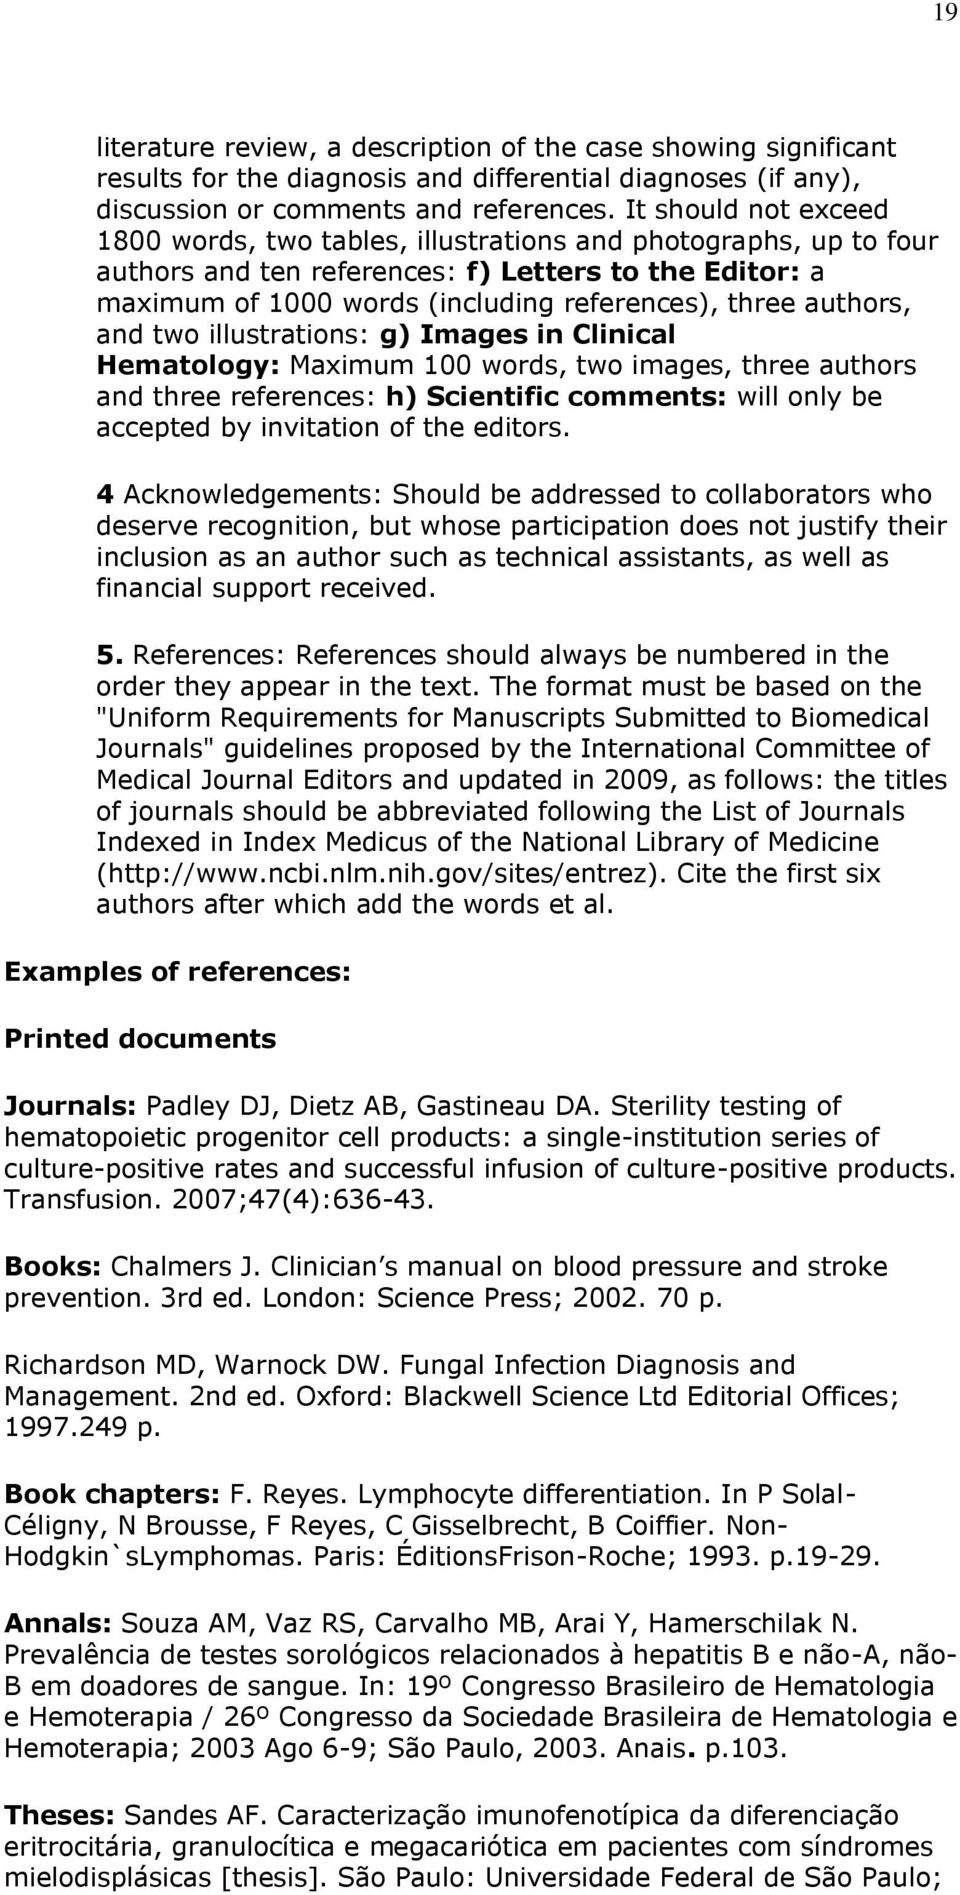 authors, and two illustrations: g) Images in Clinical Hematology: Maximum 100 words, two images, three authors and three references: h) Scientific comments: will only be accepted by invitation of the